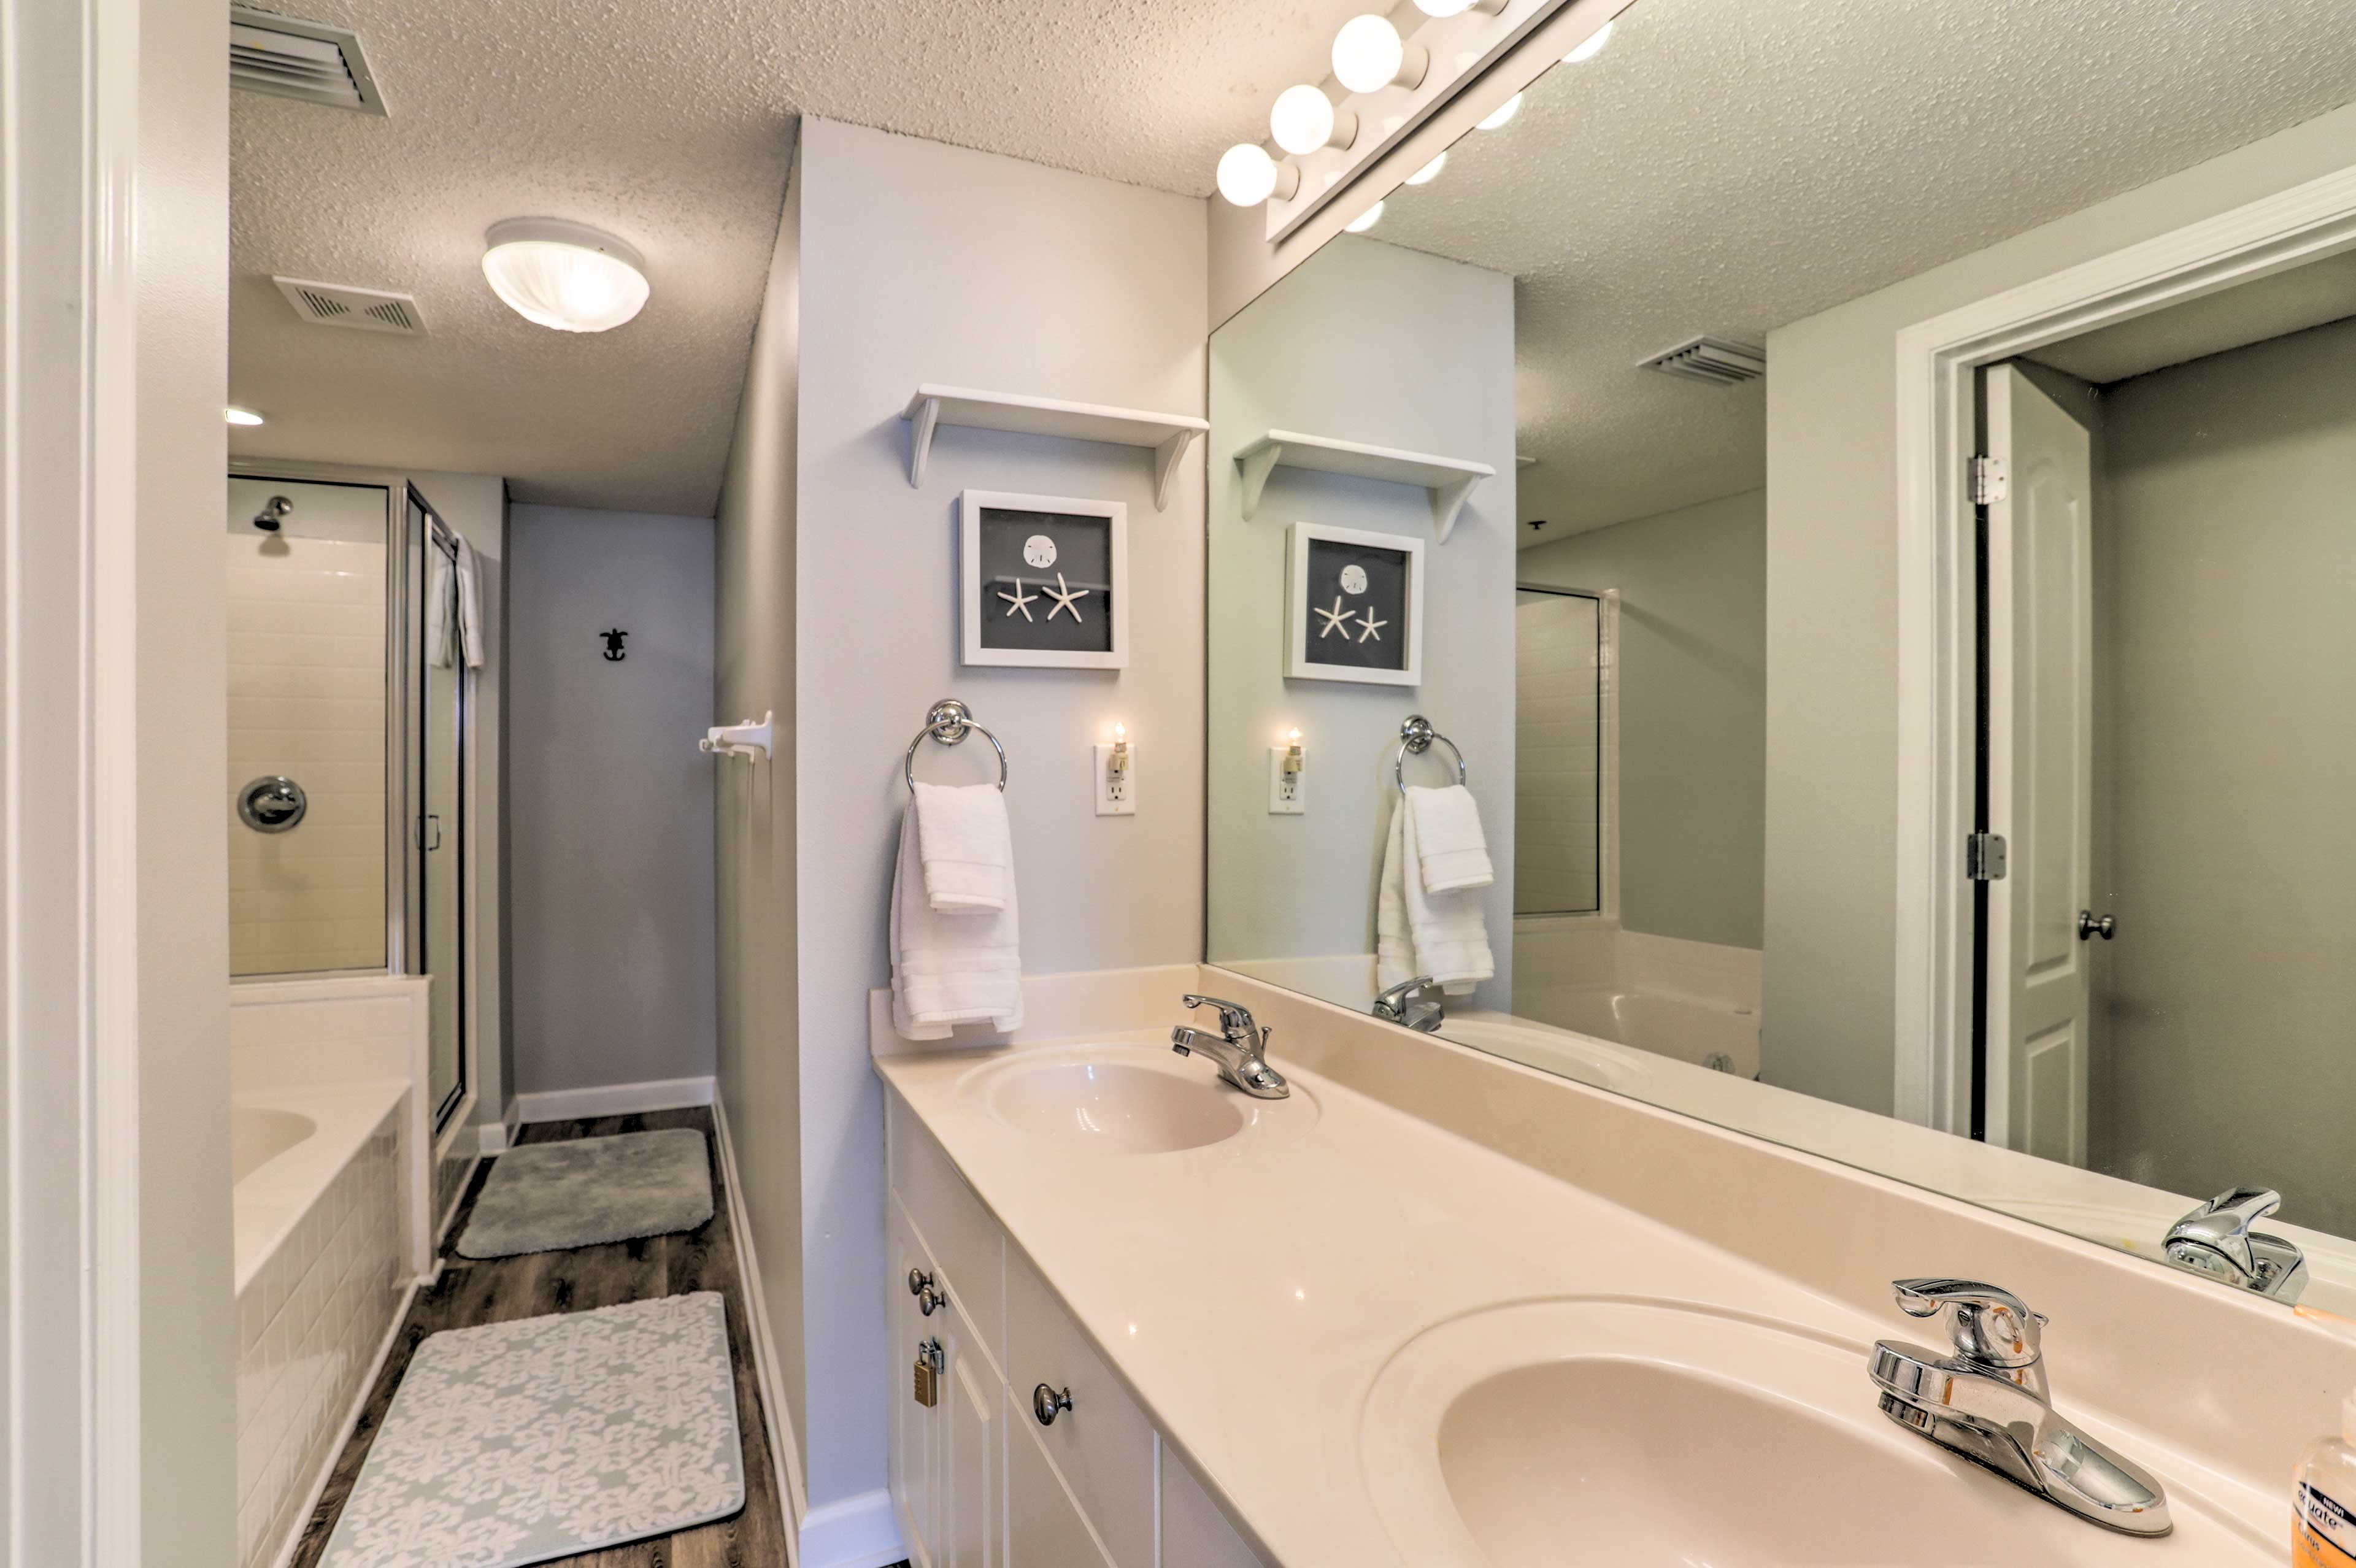 The master bedroom includes the added luxury of an en-suite bathroom.